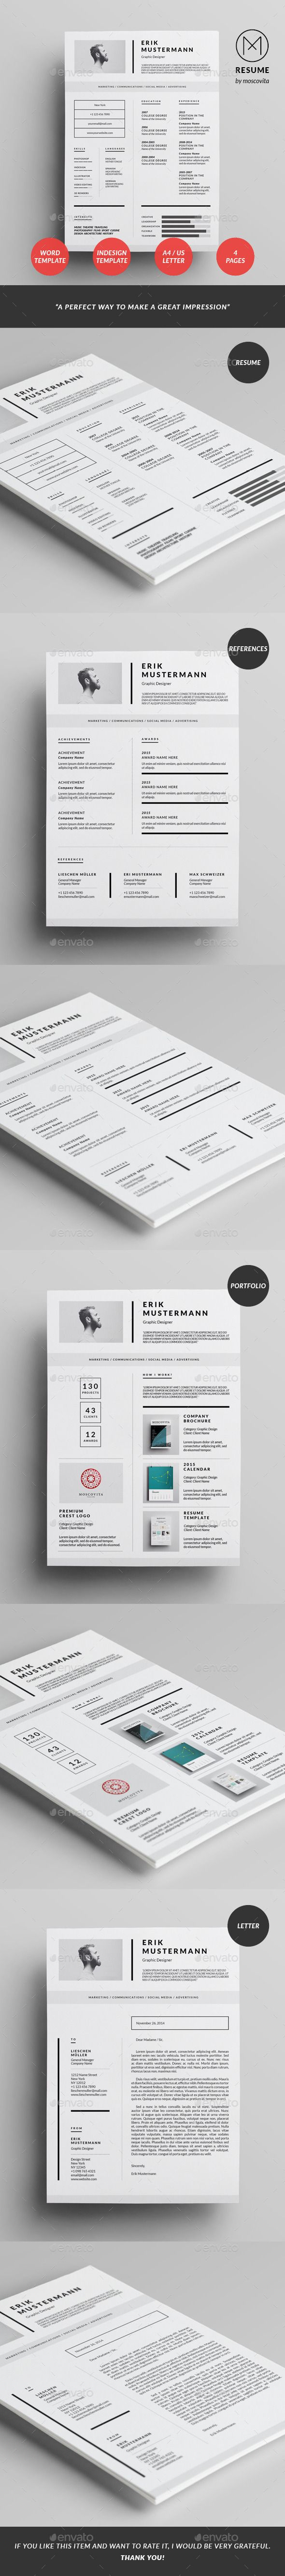 best images about resume design cover the clean resume template is a very clean and professional way to make a great impression you can present the relevant information combining simplicity and